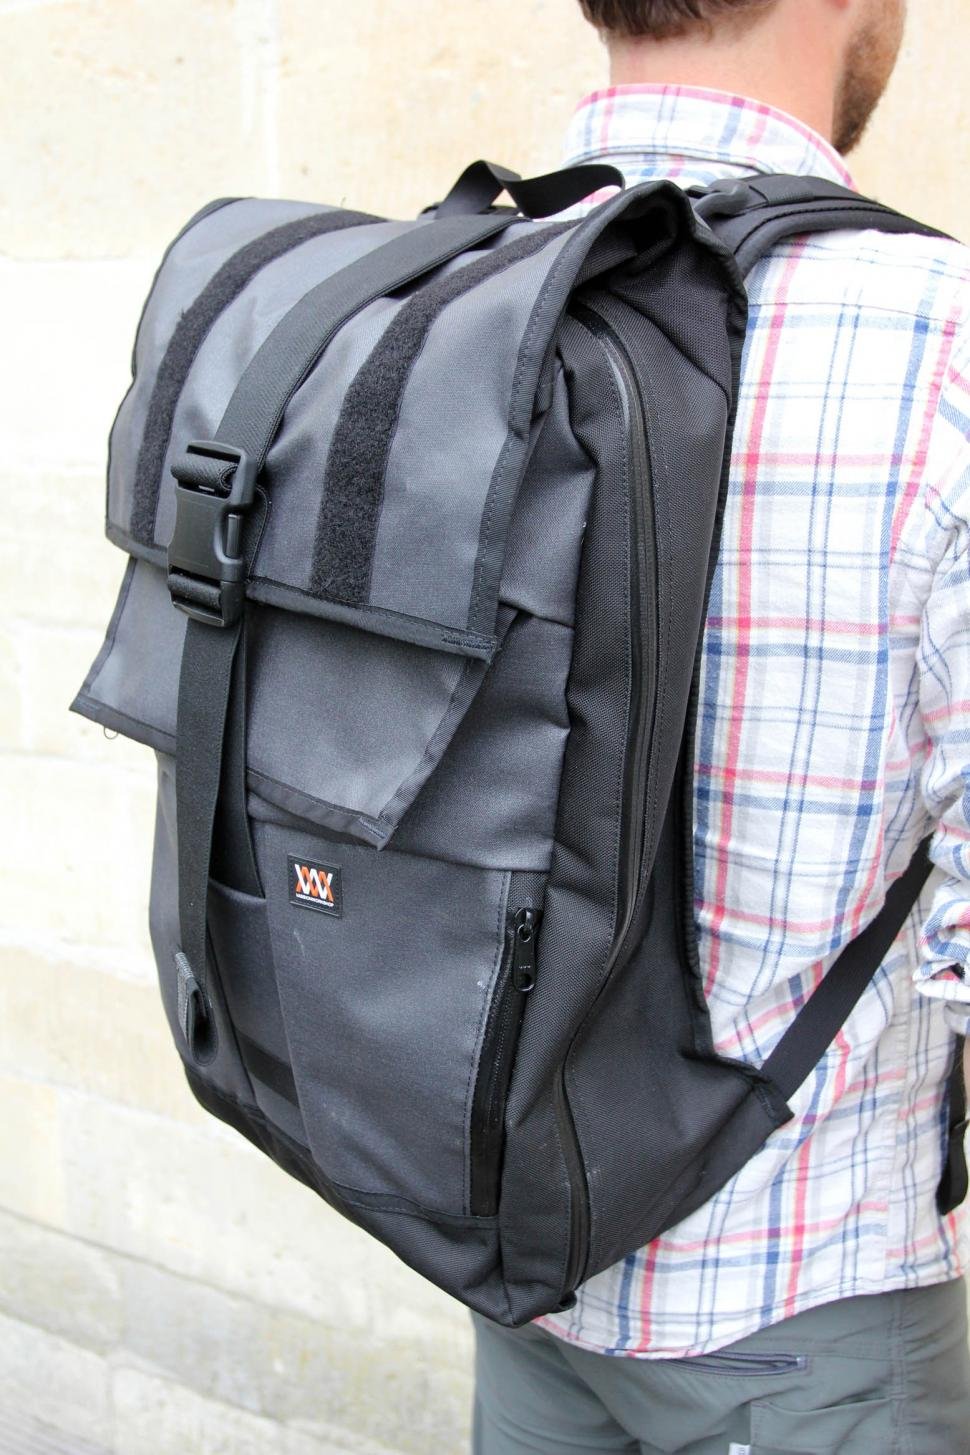 Mission Workshop Vandal backpack